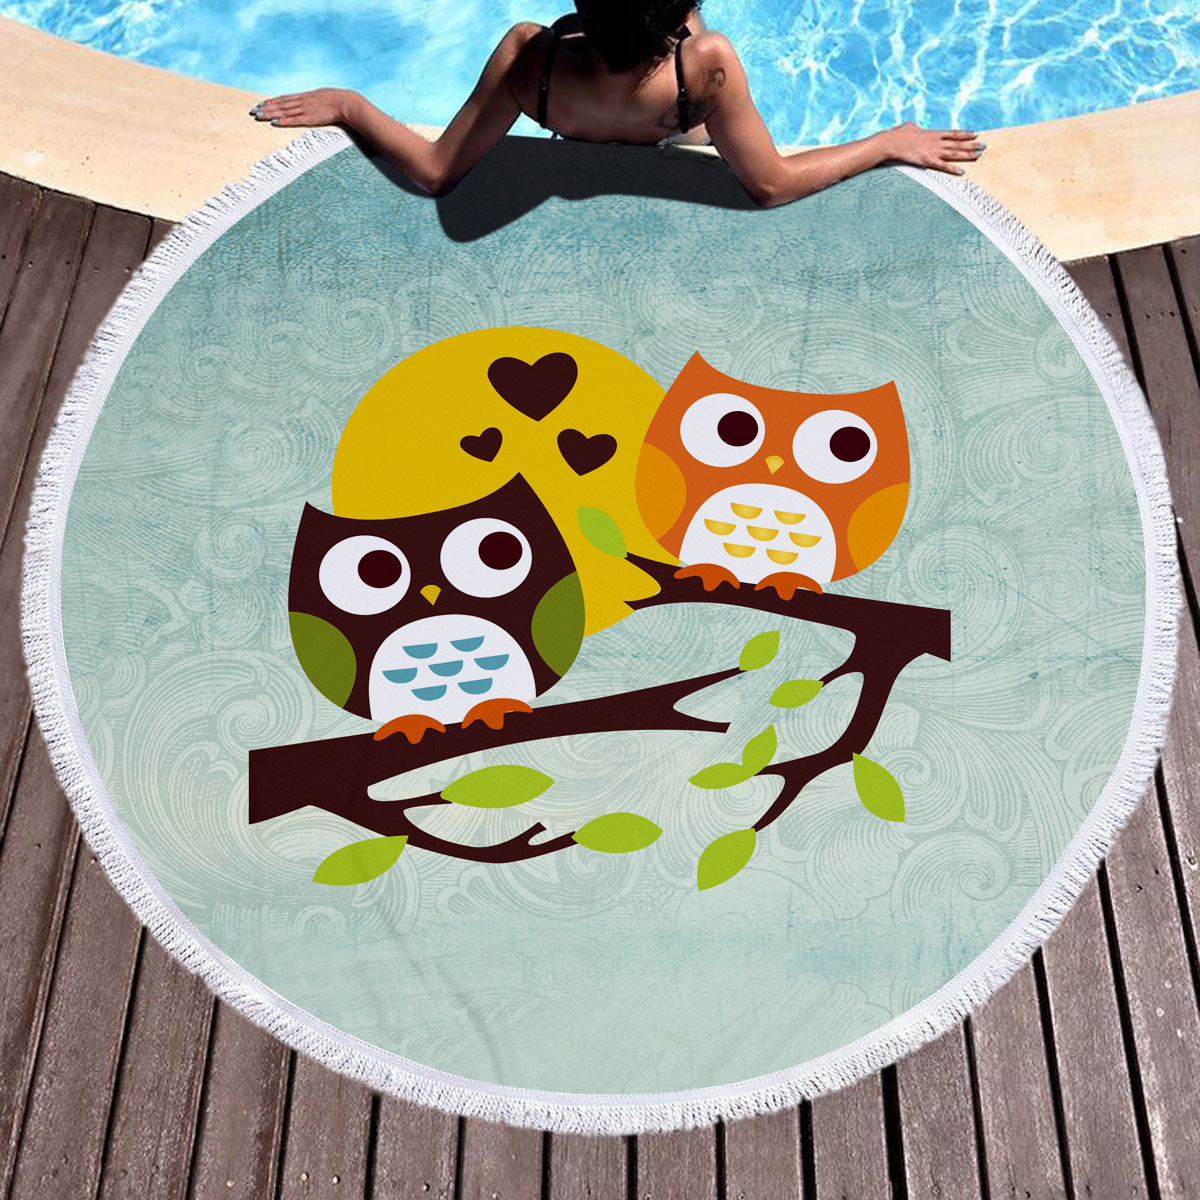 Tropical Island Owl Soft Quick Dry Water Absorb Leisure Large Round Beach Towel Microfiber Bath Towel Yoga Mat Toalha De Banho